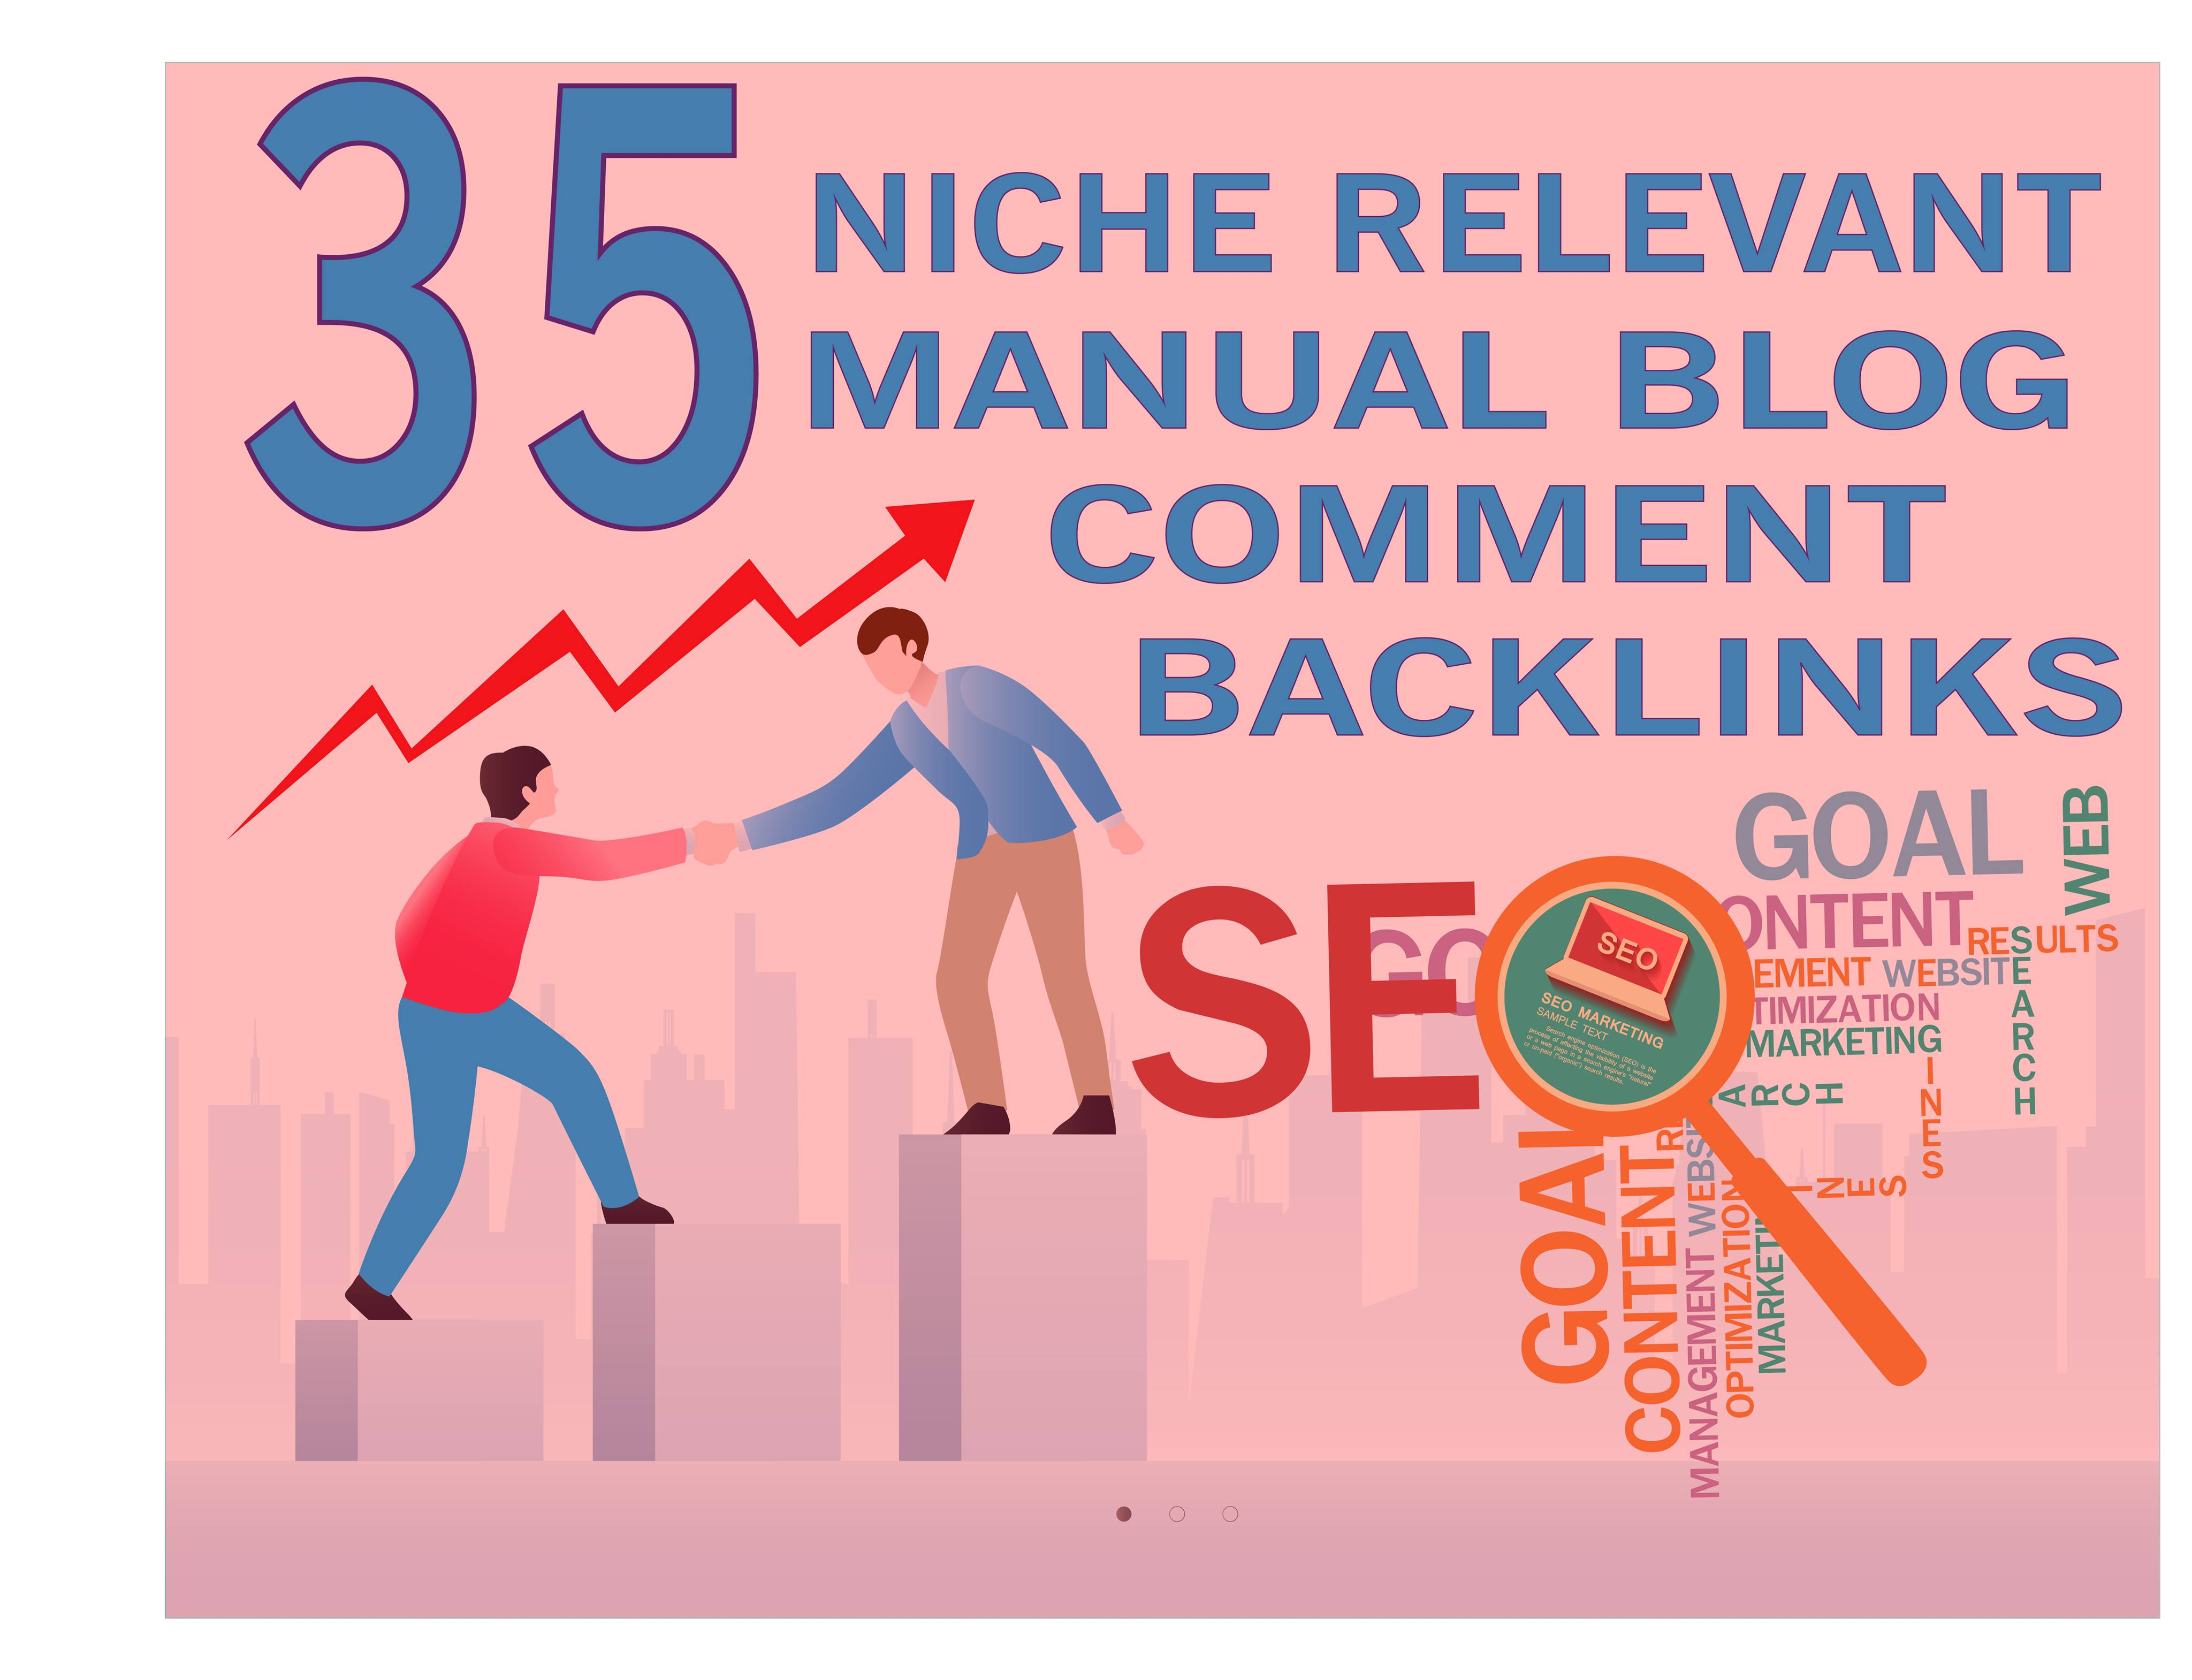 Give 30 Dofollow Manual Blog Comments Links Under 20 Obl - Gigsdy